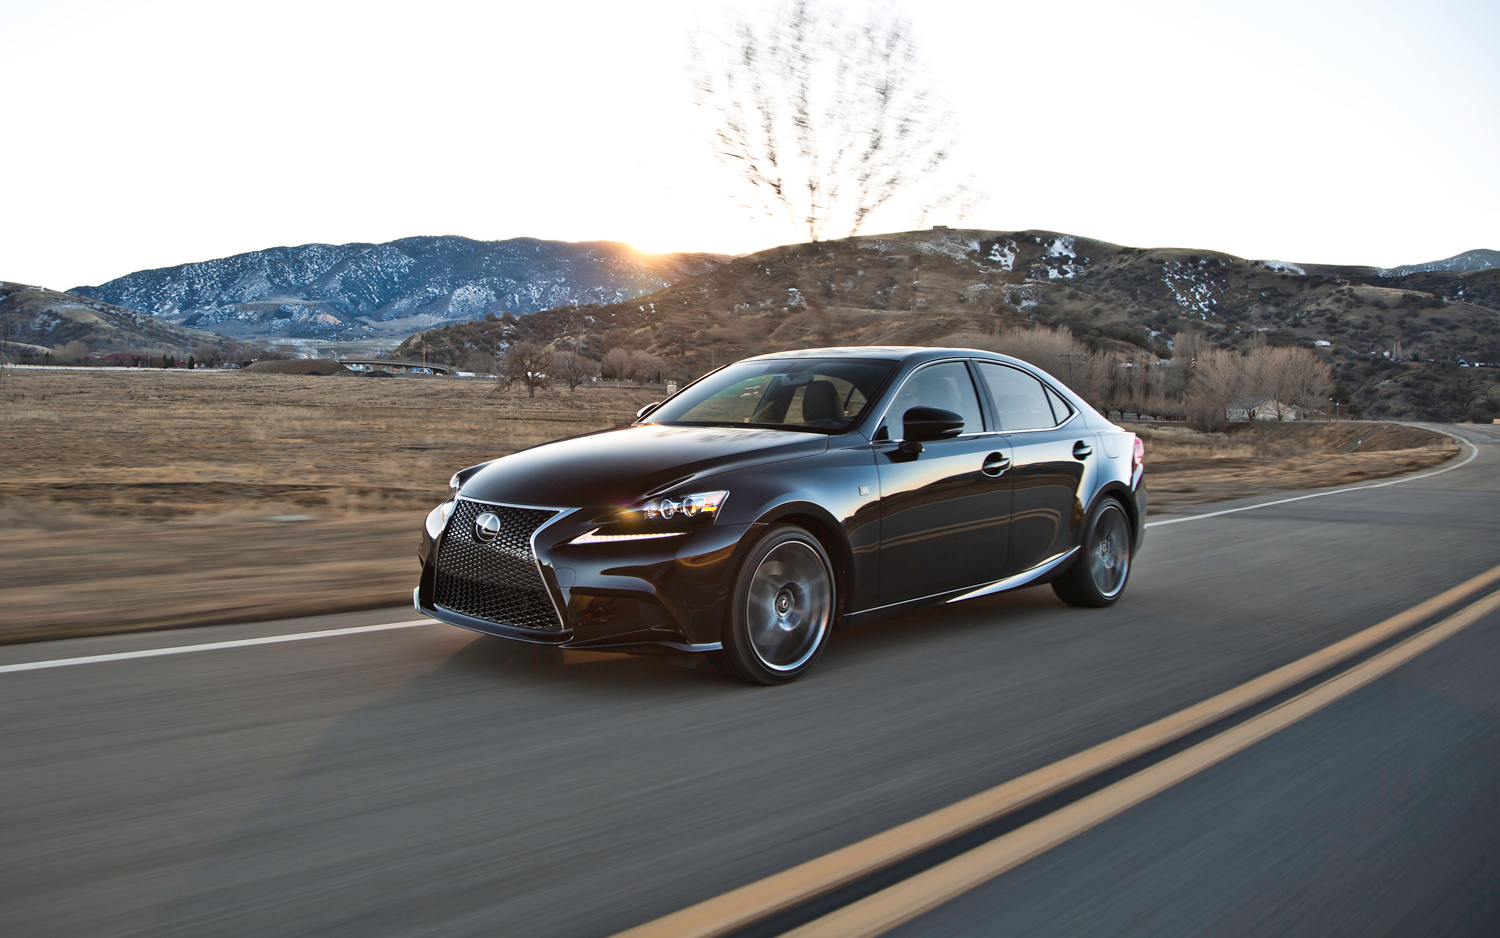 2014 Lexus IS 350 F Sport First Drive